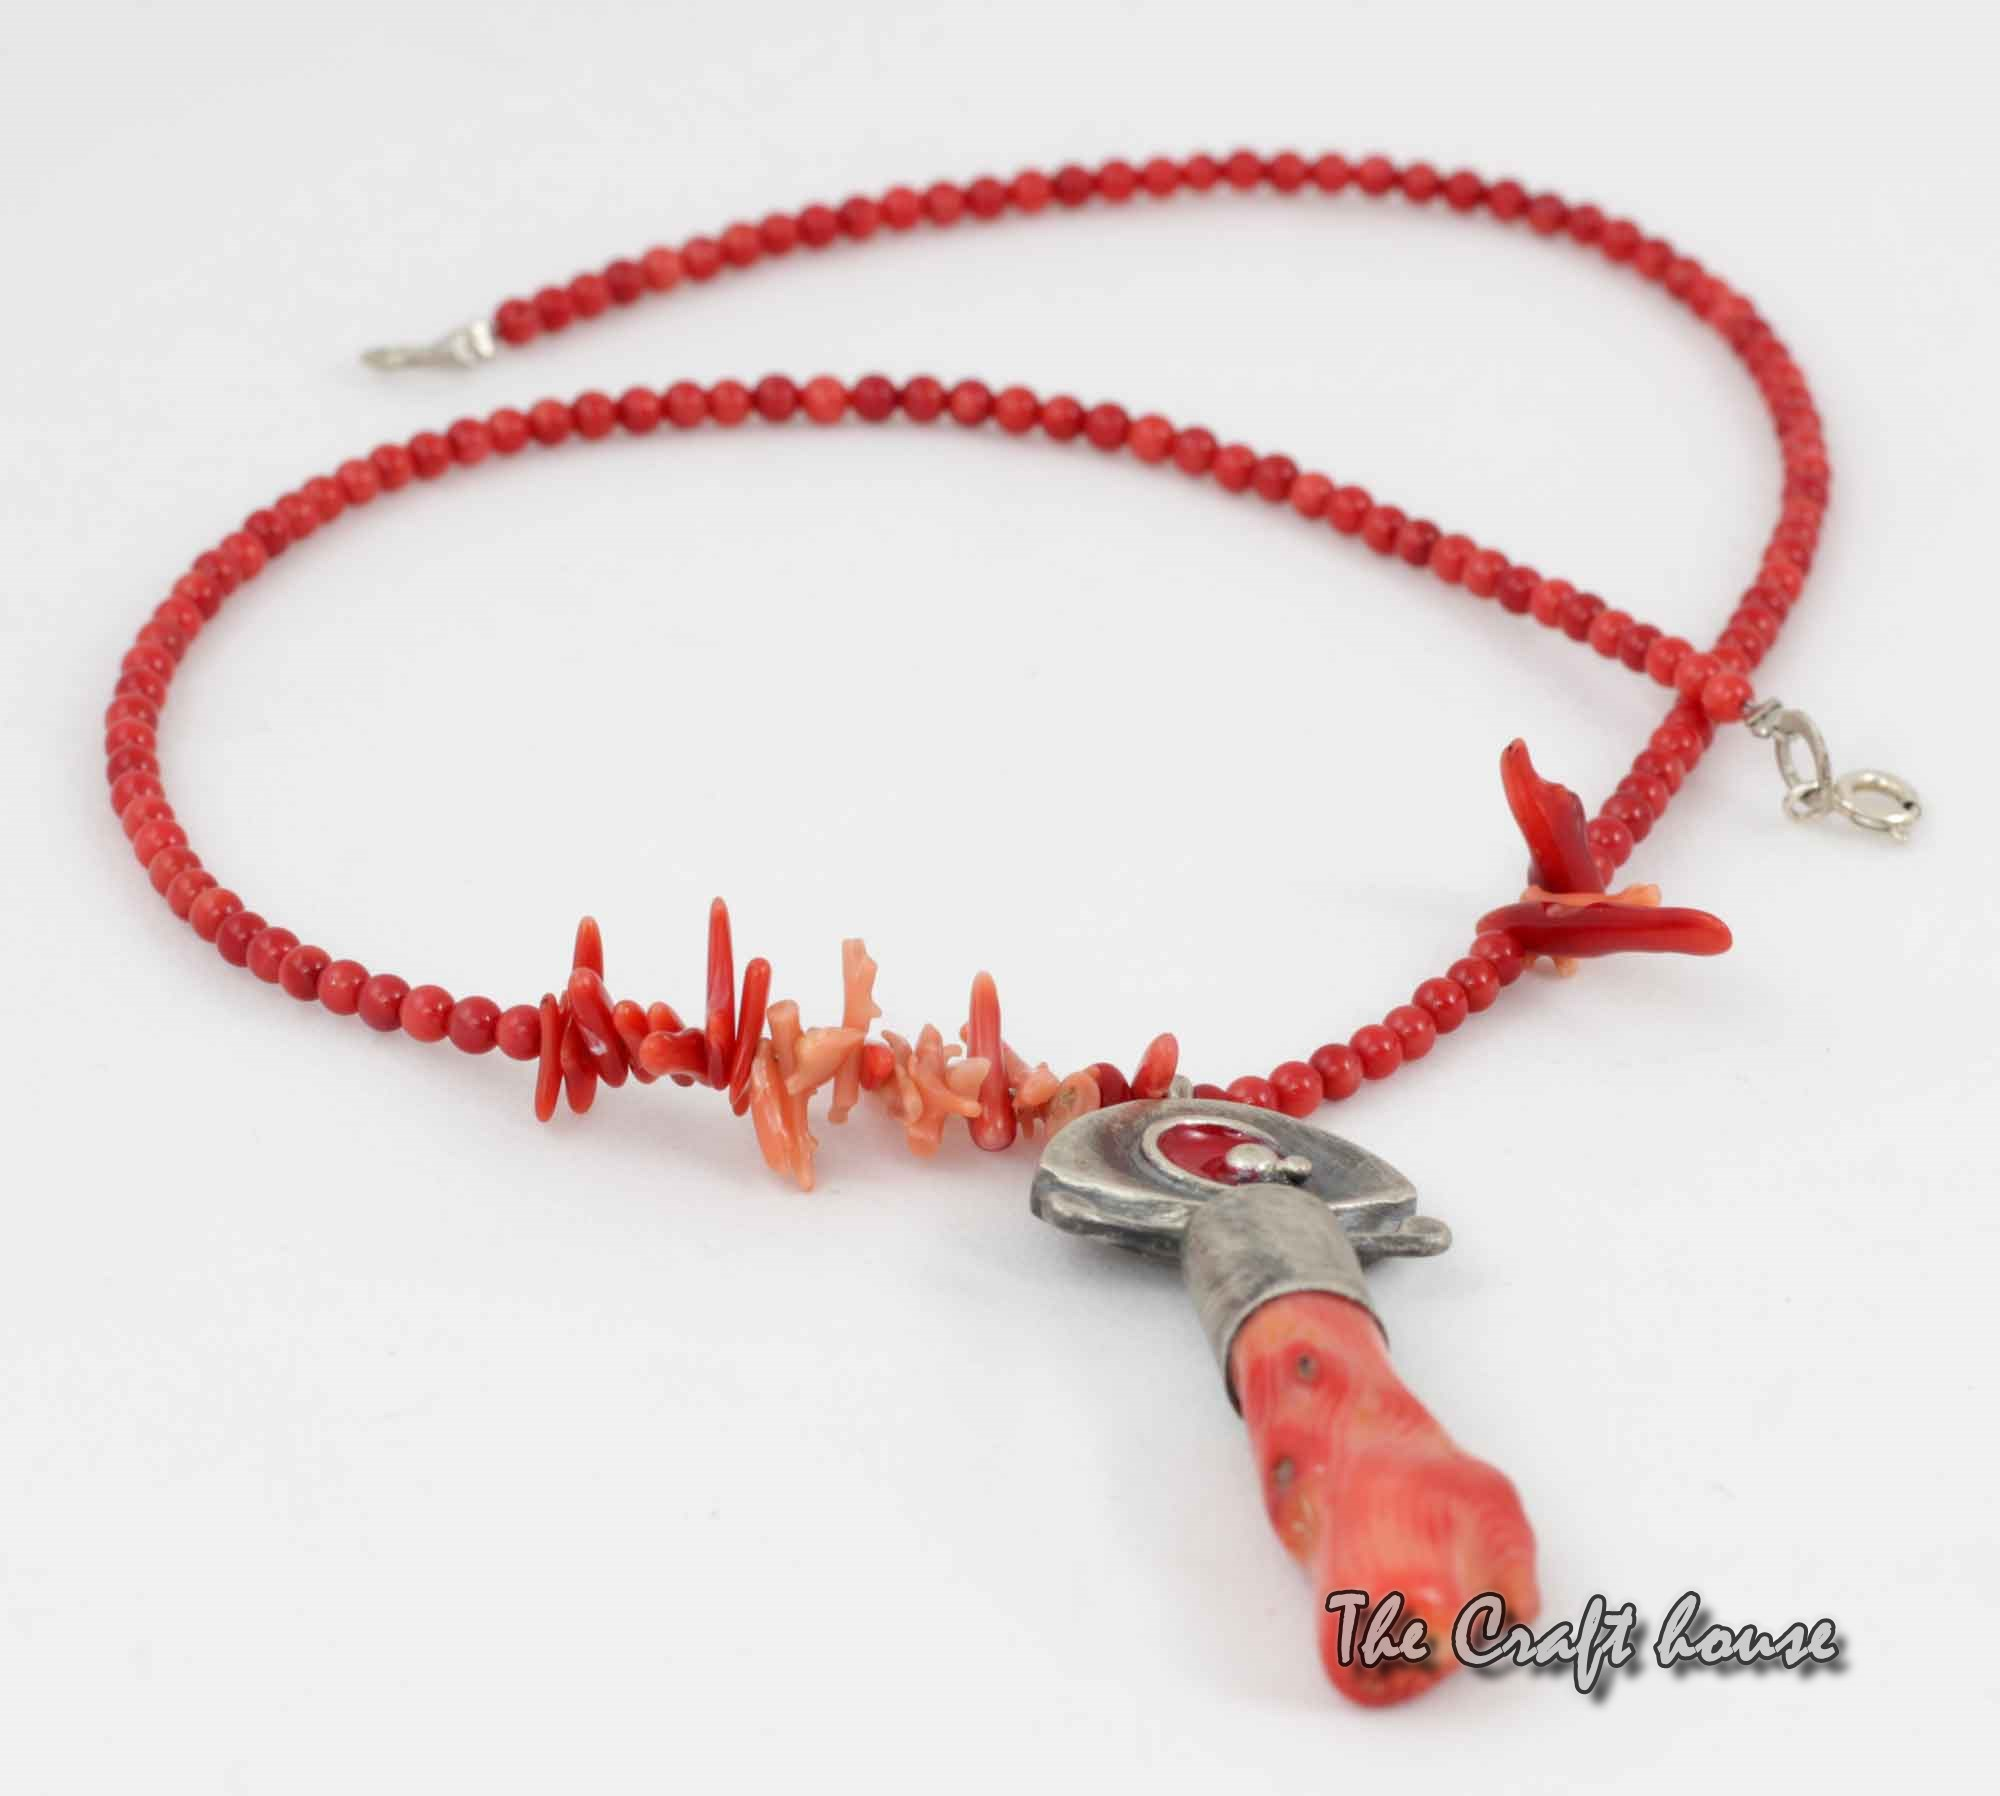 Silver necklace with Coral